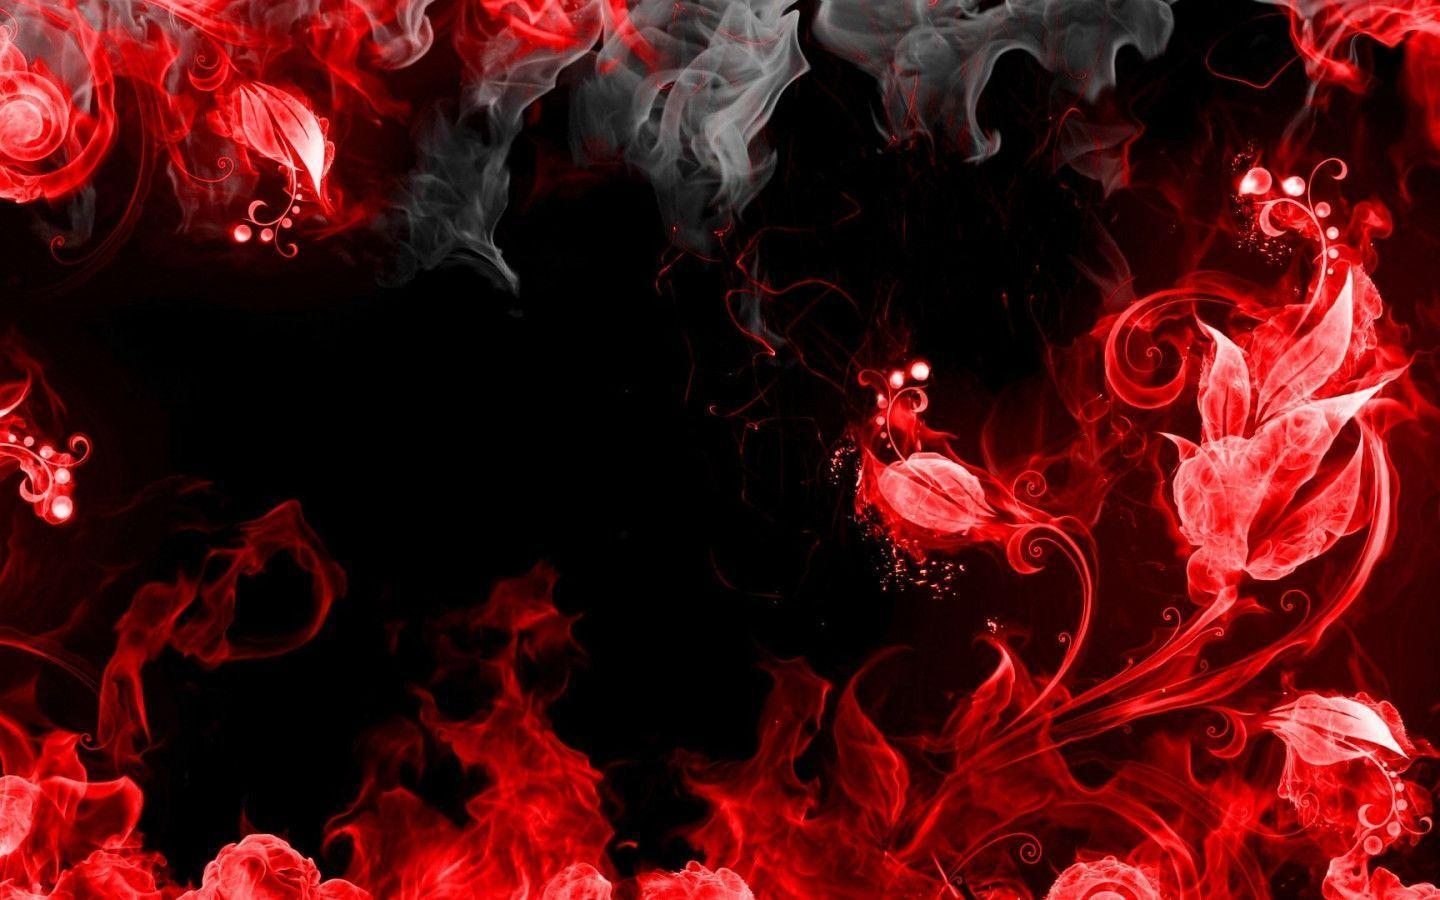 Black And Red Abstract Backgrounds Image 6 HD Wallpaperscom